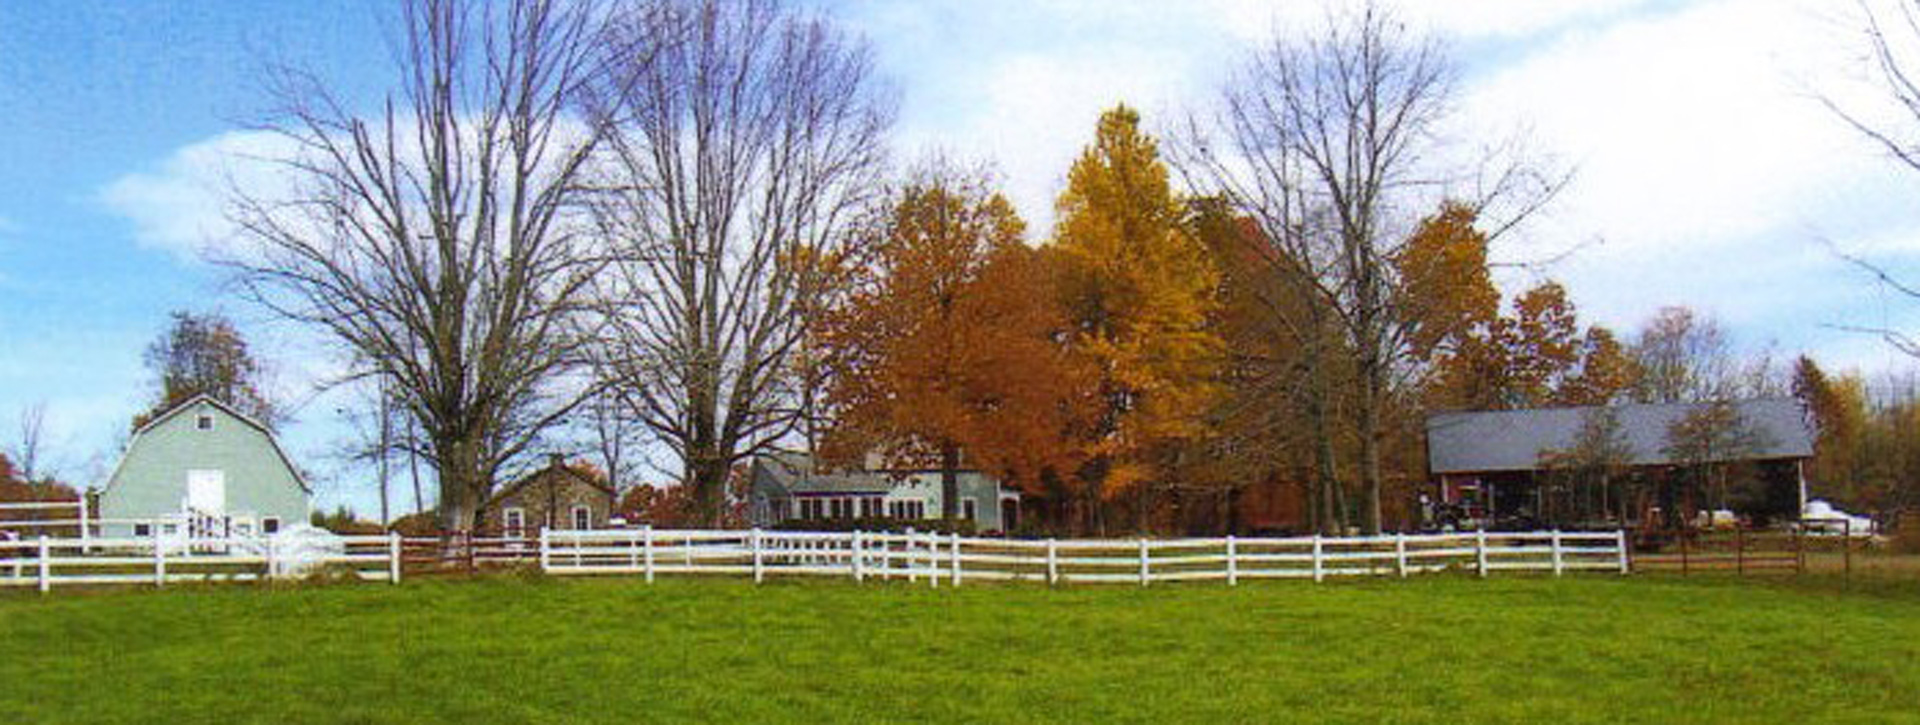 A scenic view of Manning Hill Farm in late autumn